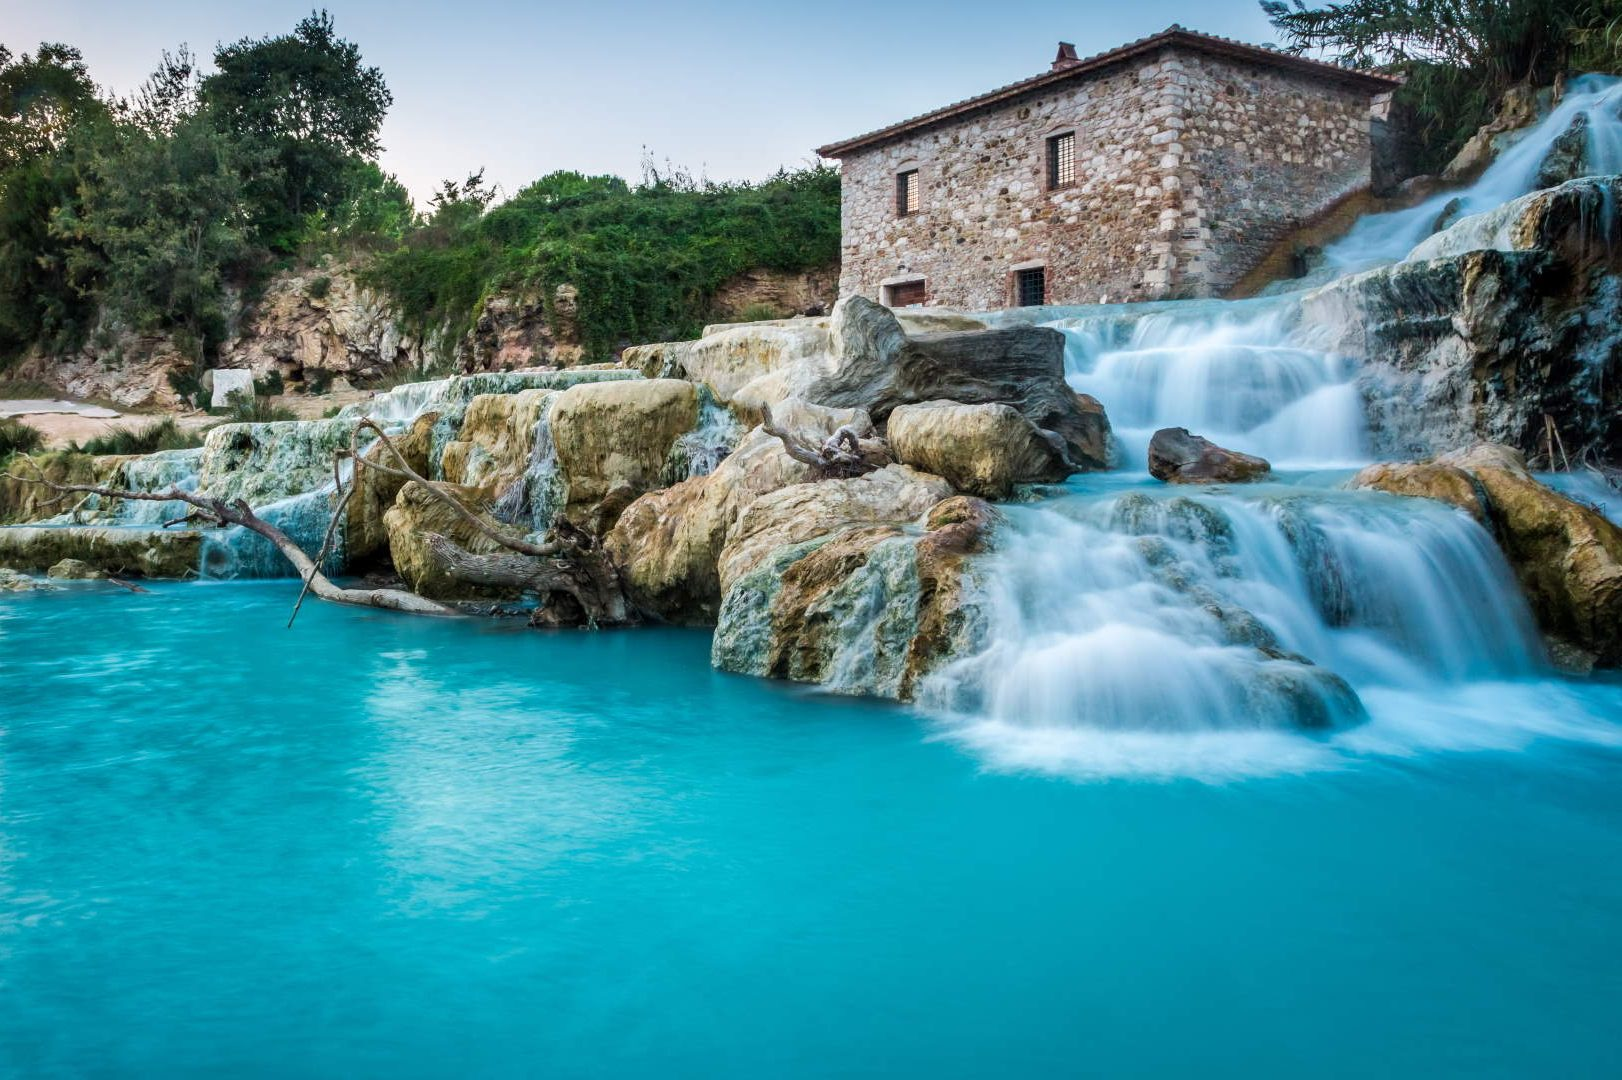 Canva-Natural-spa-with-waterfalls-in-Tuscany-Italy